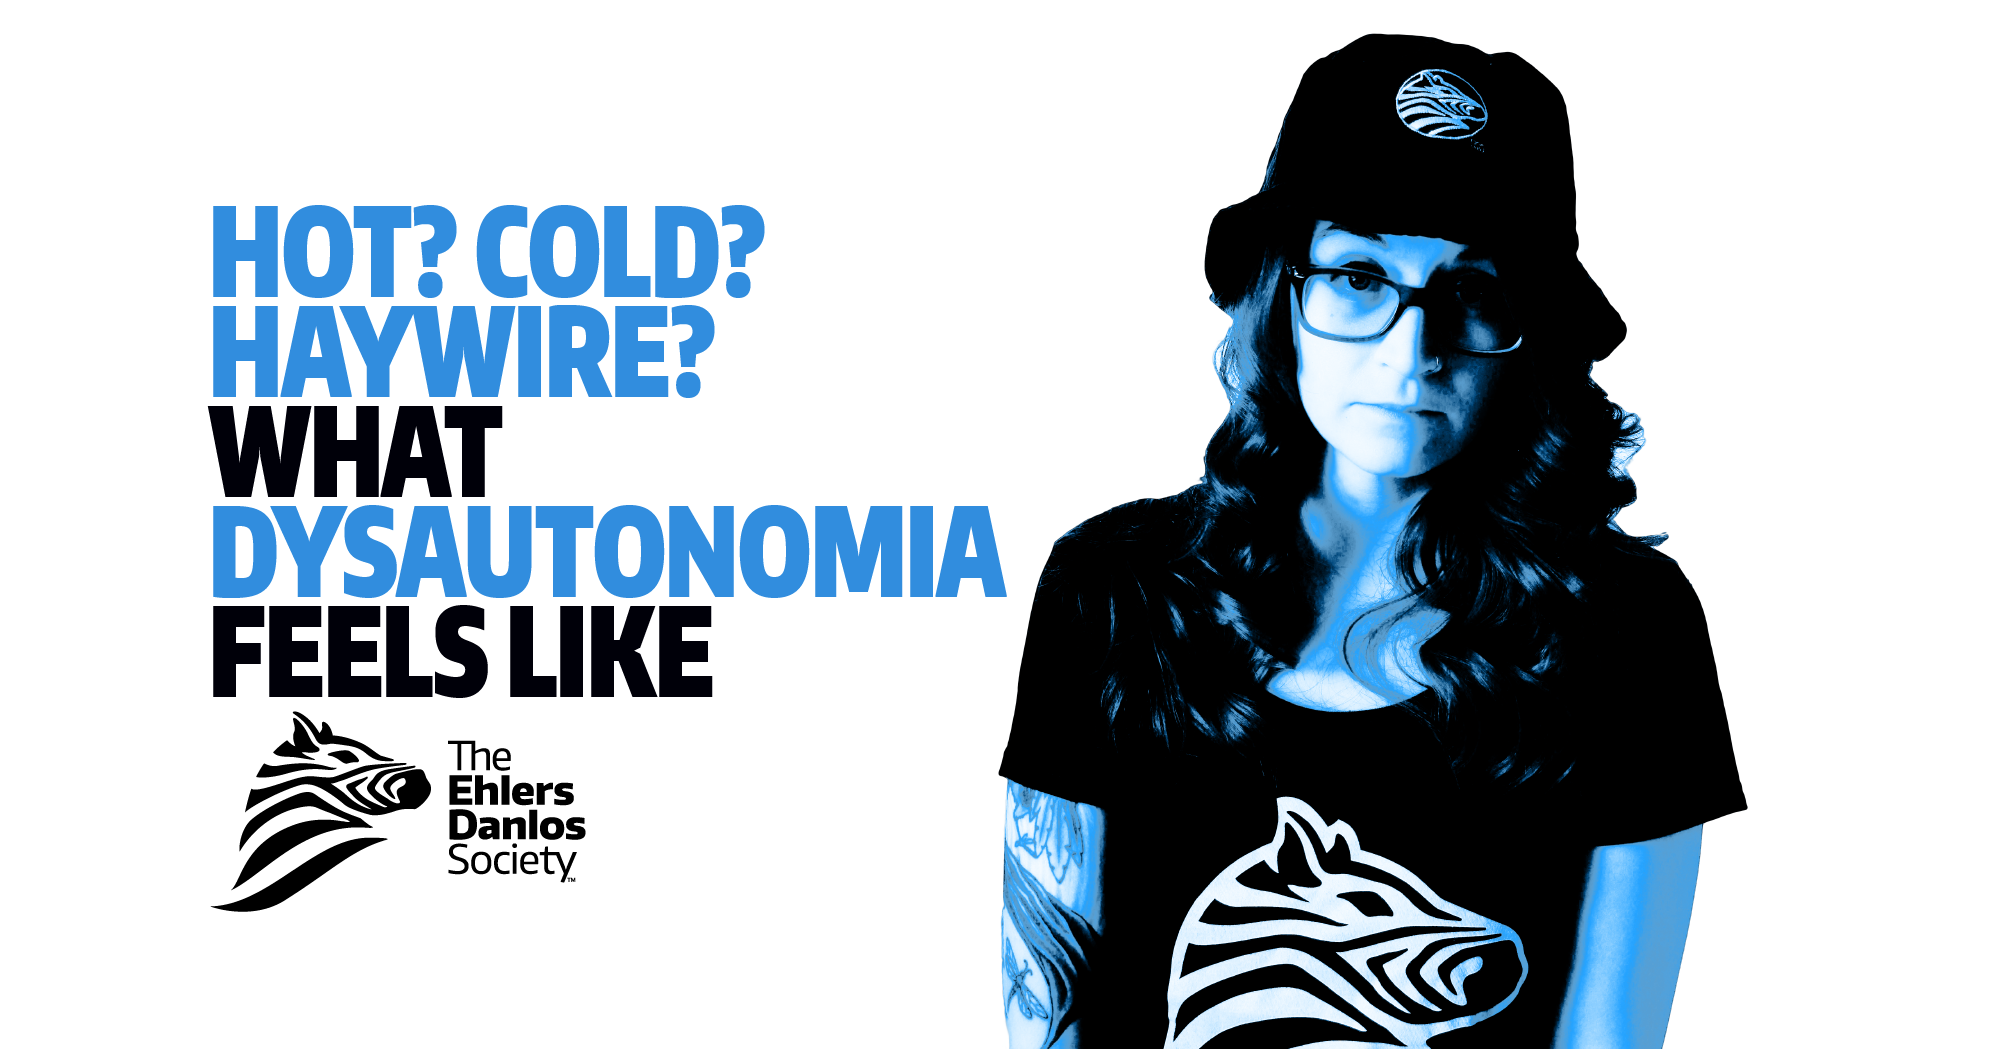 Hot? Cold? Haywire? What dysautonomia feels like  | The